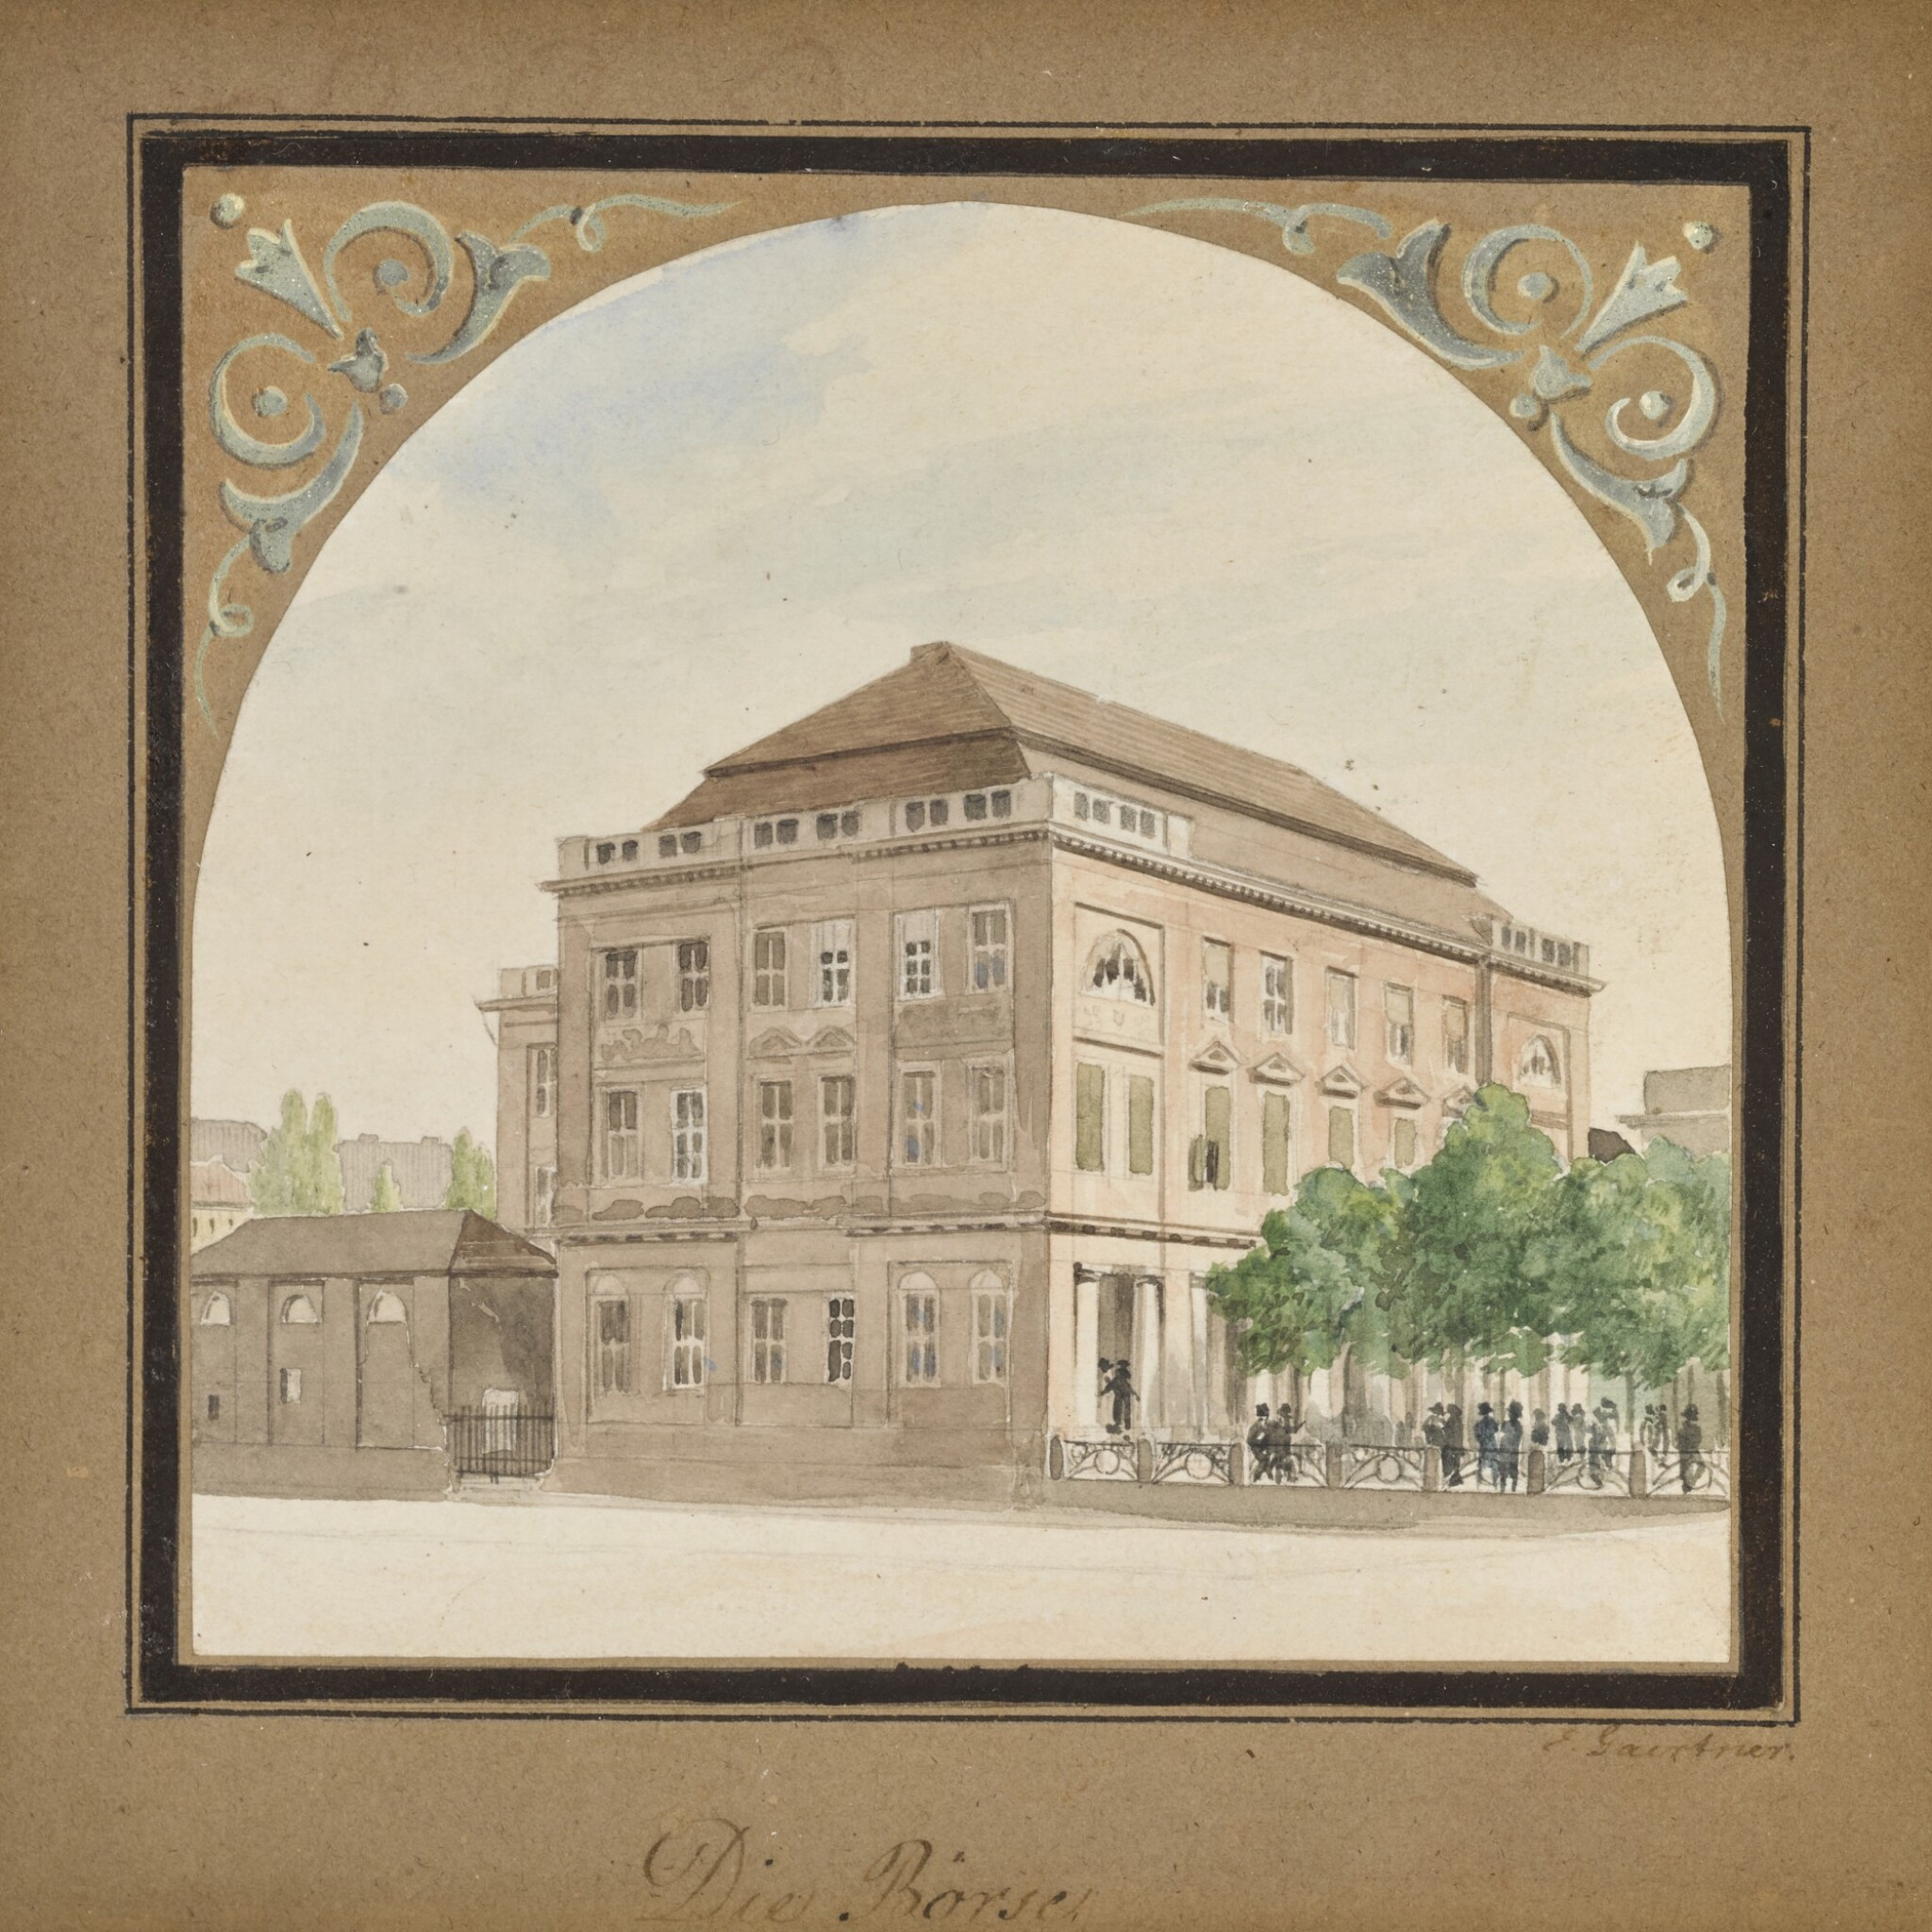 View 1 of Lot 60. Die Börse (The Stock Exchange).